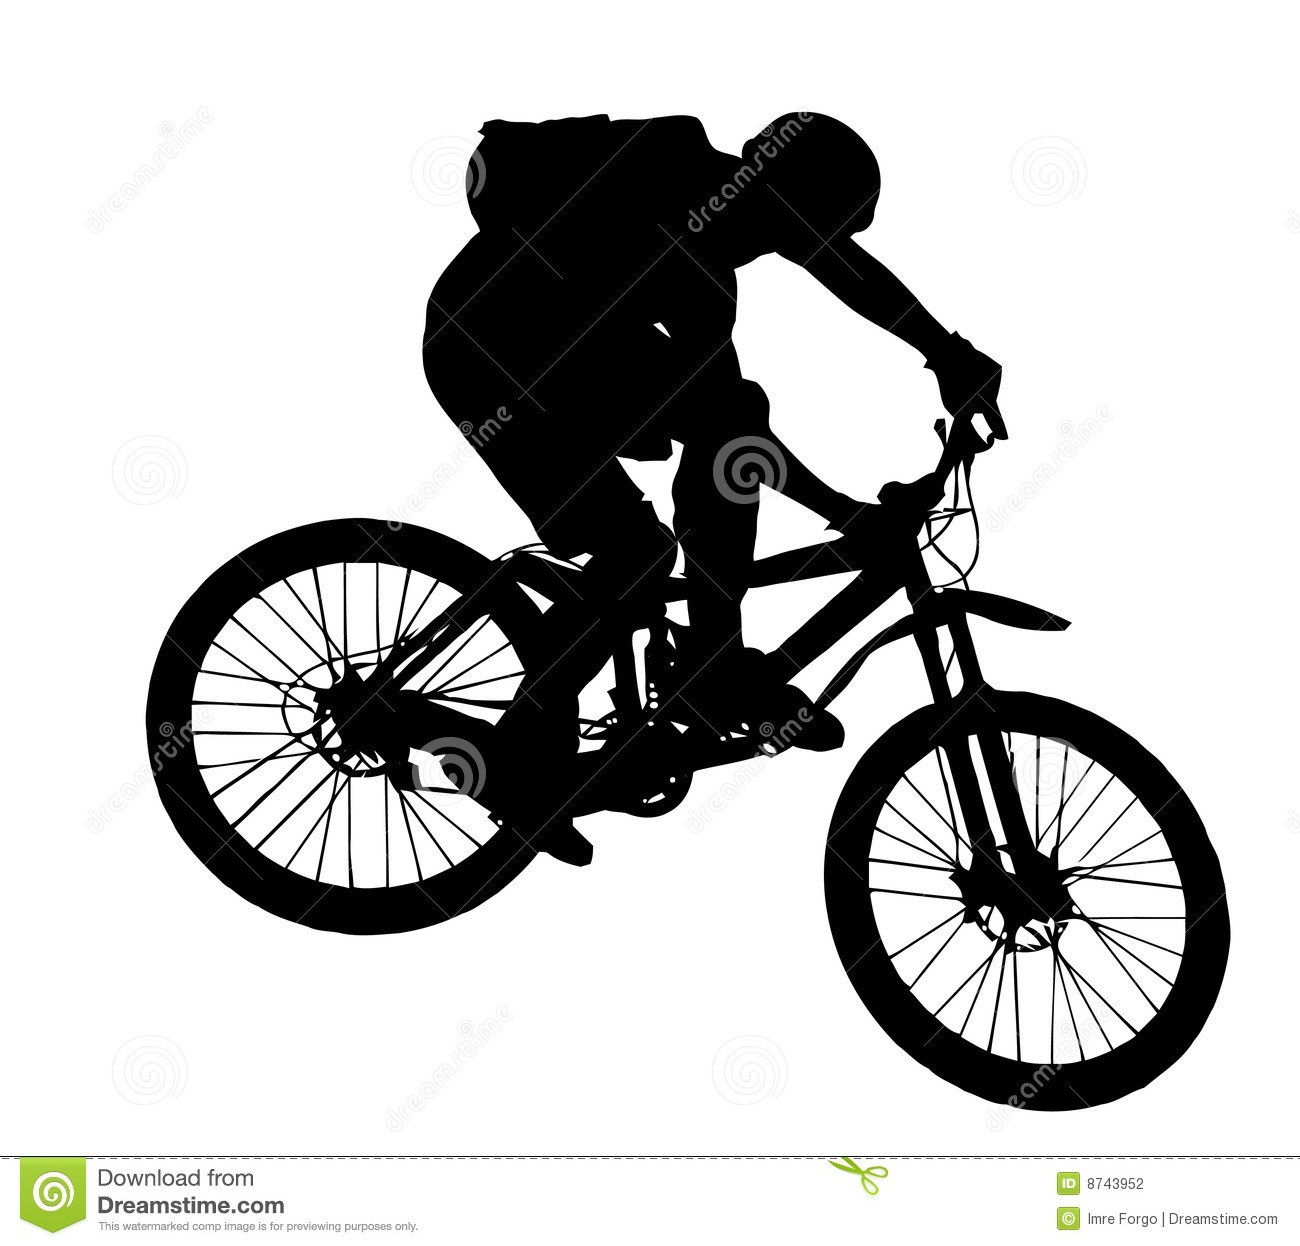 Bicycle clipart downhill Biker Mountain clipart Downhill Collection